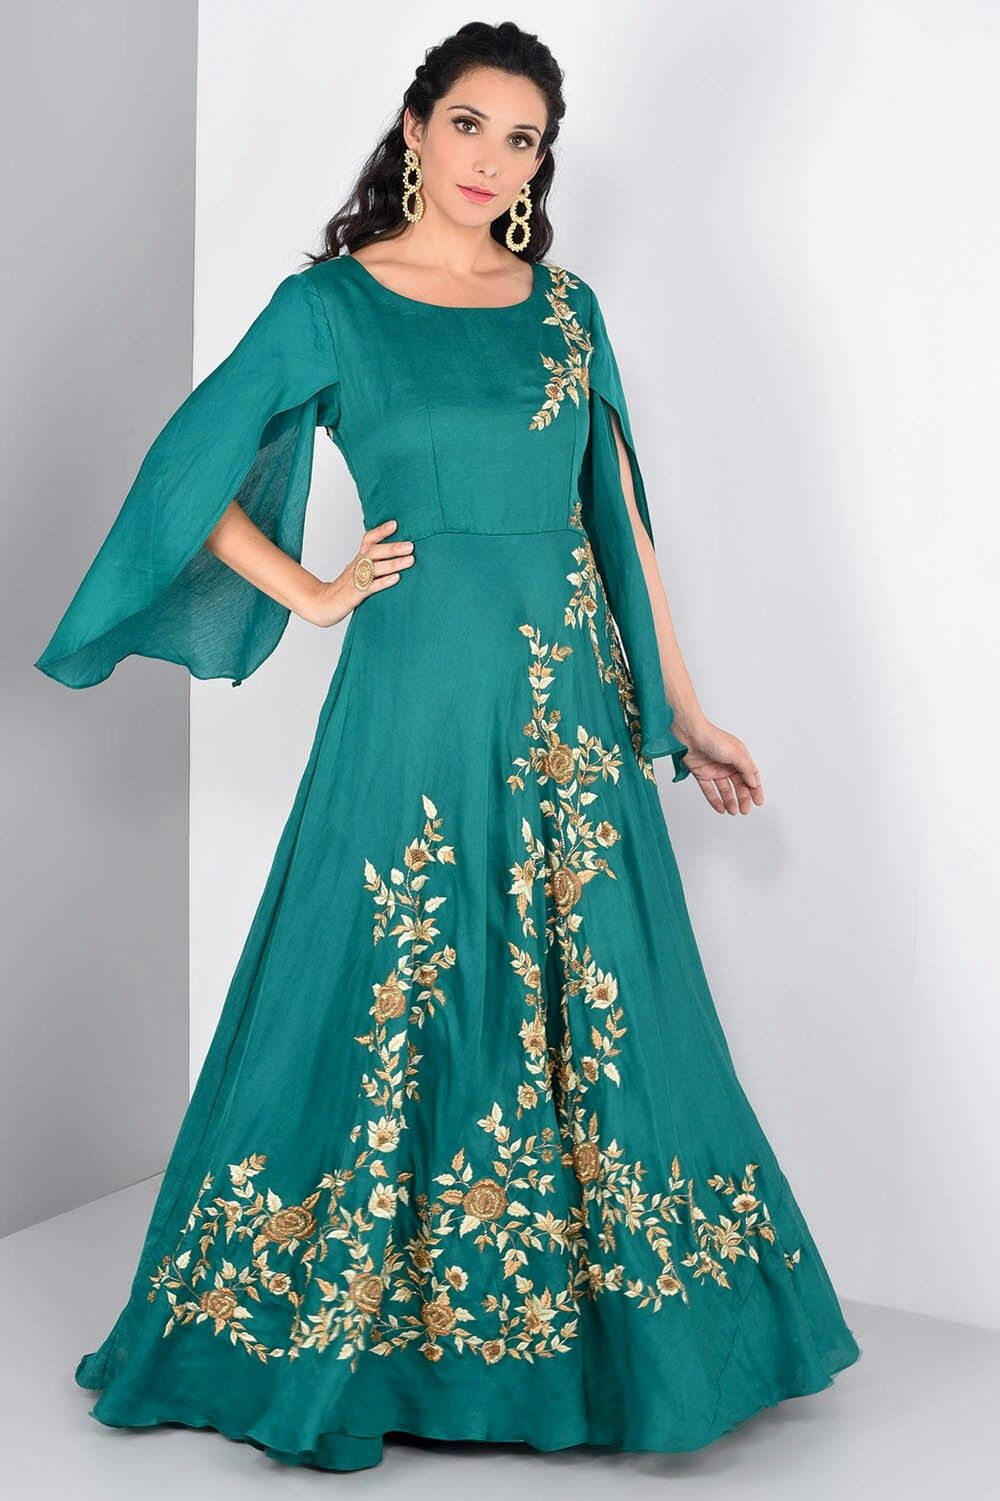 NIYOOSH - teal green bell sleeved gown | Pretty gowns | Pinterest ...